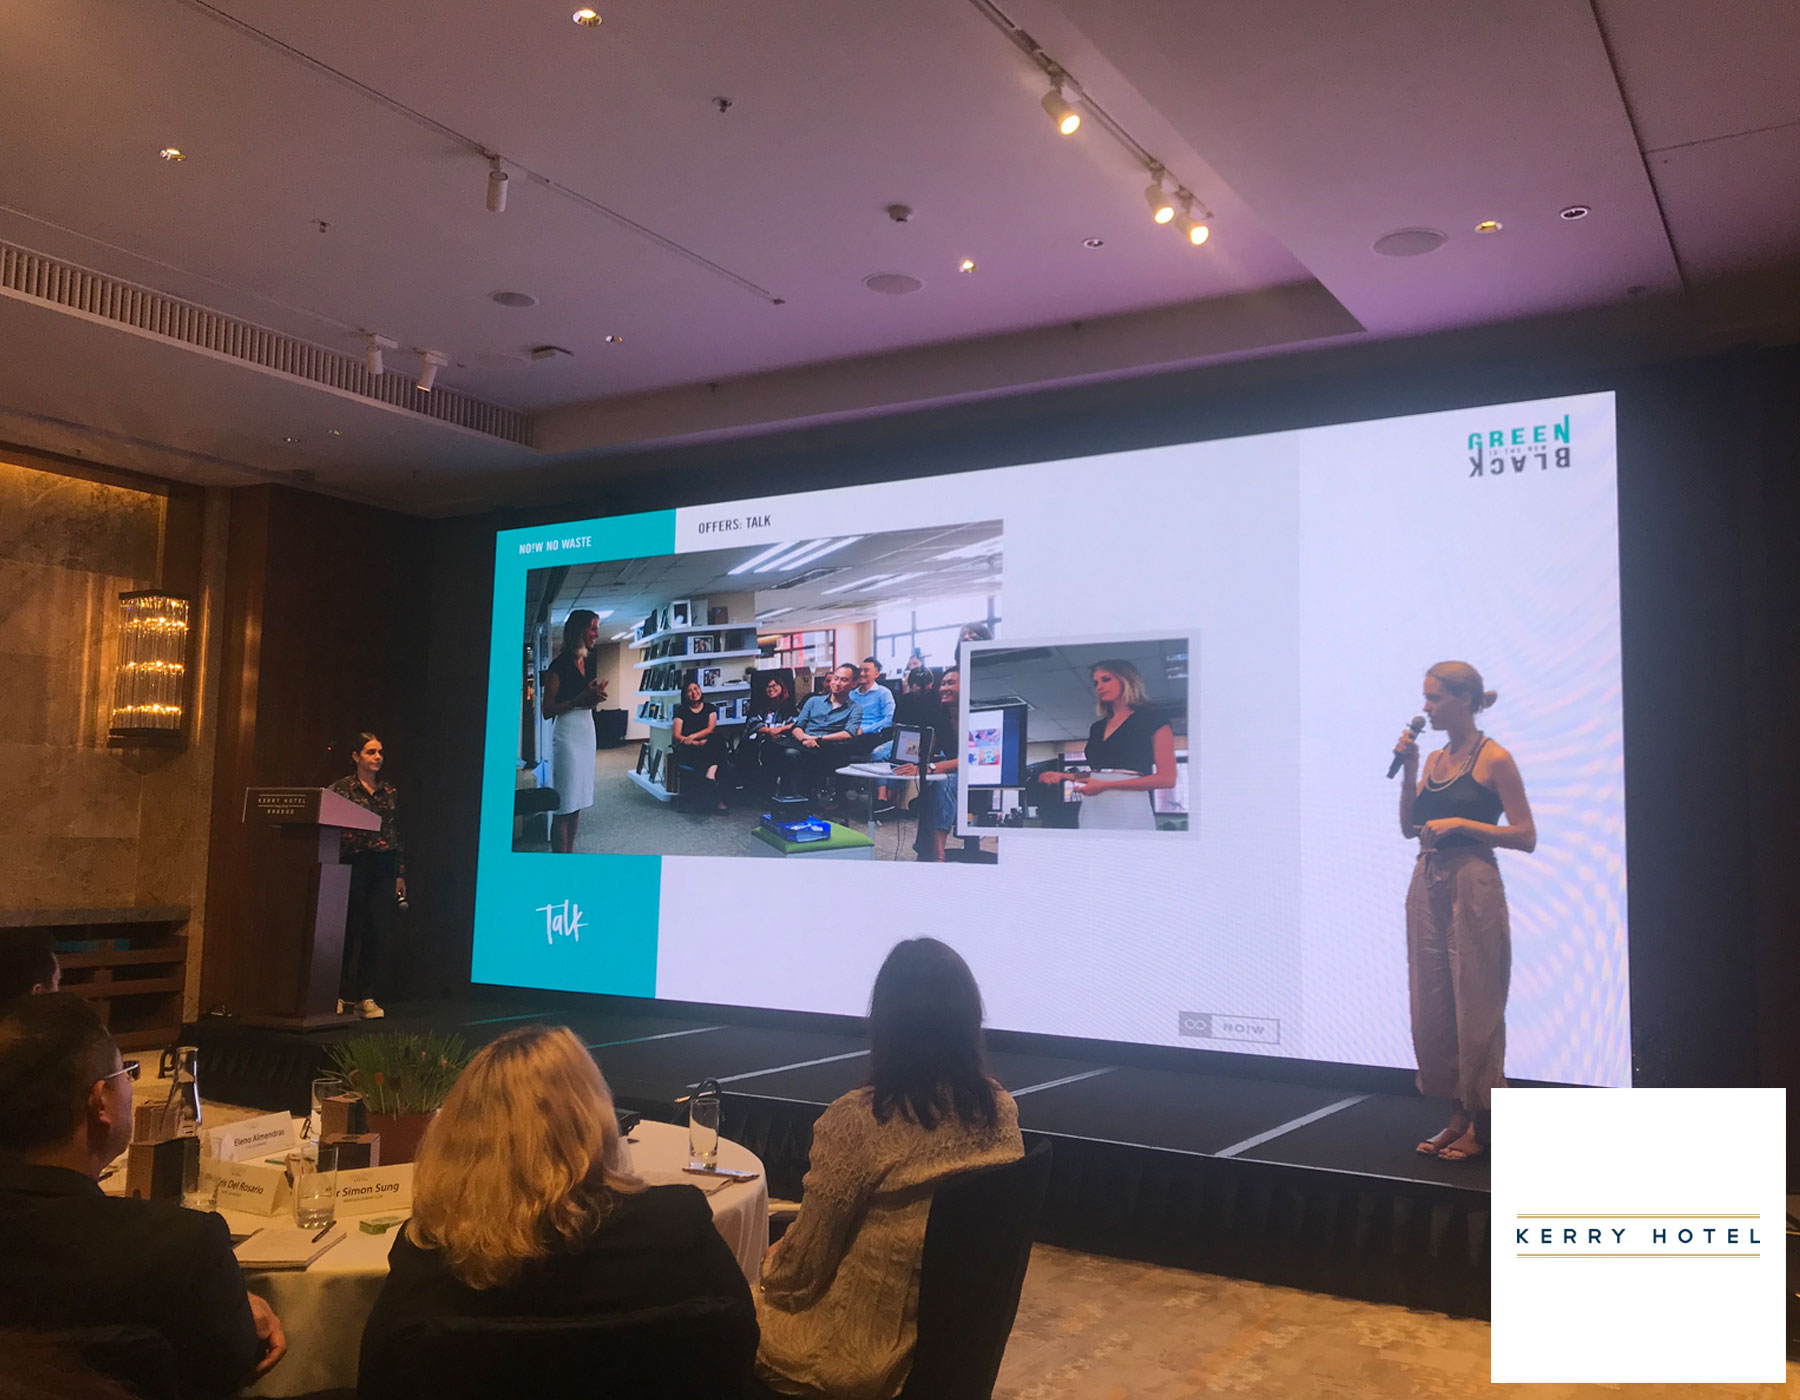 Talk about Zero Waste and sustainability at Kerry Hotel - Hong Kong - August 2018